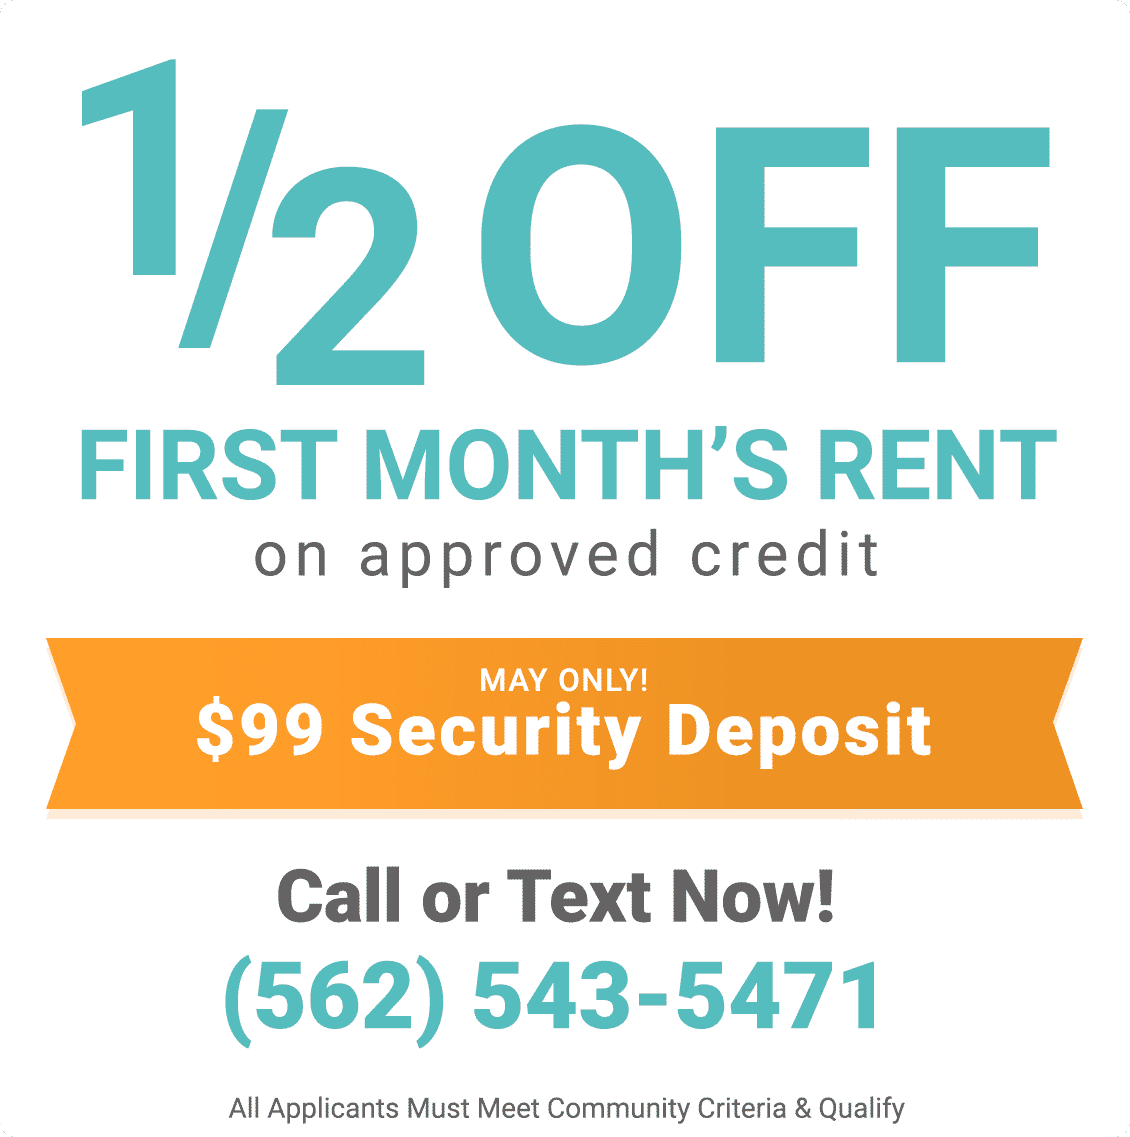 1/2 off first month's rent on approved credit